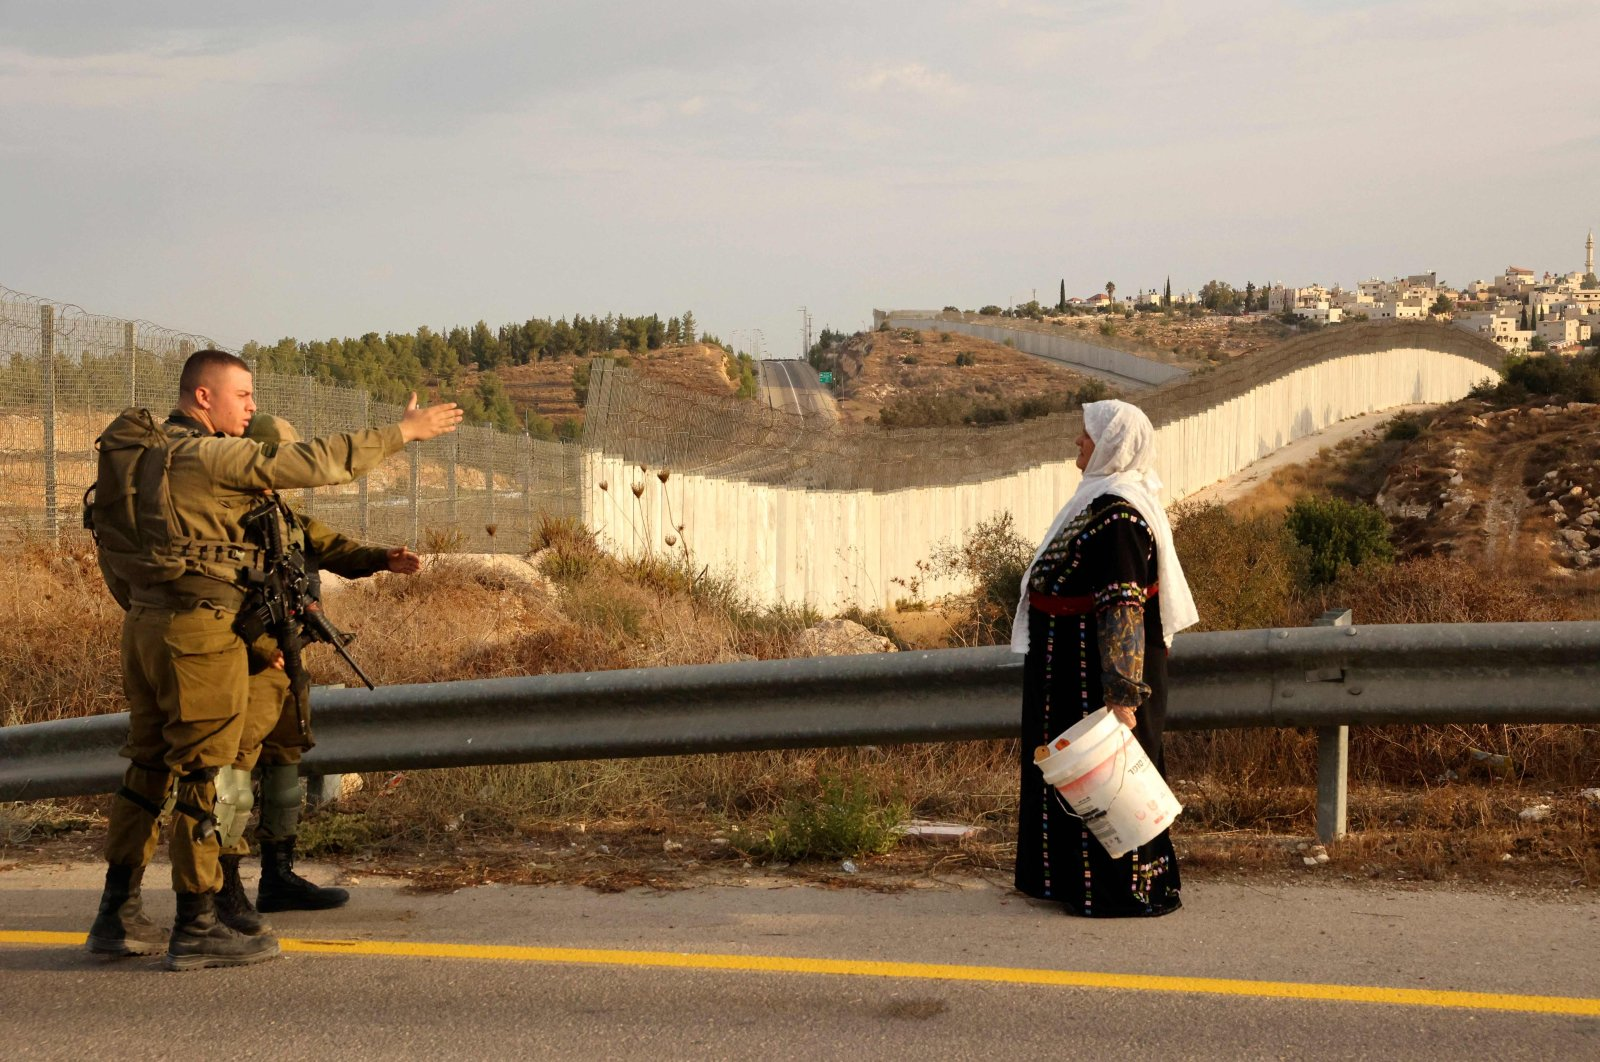 A Palestinian woman stands with others (not pictured) as they gather near an Israeli army checkpoint and wait to reach their olive fields on the other side of Israel's separation barrier (background), near the village of Bait A'wa on the outskirts of the West Bank city of Hebron, occupied Palestine, Oct. 13, 2021. (AFP Photo)